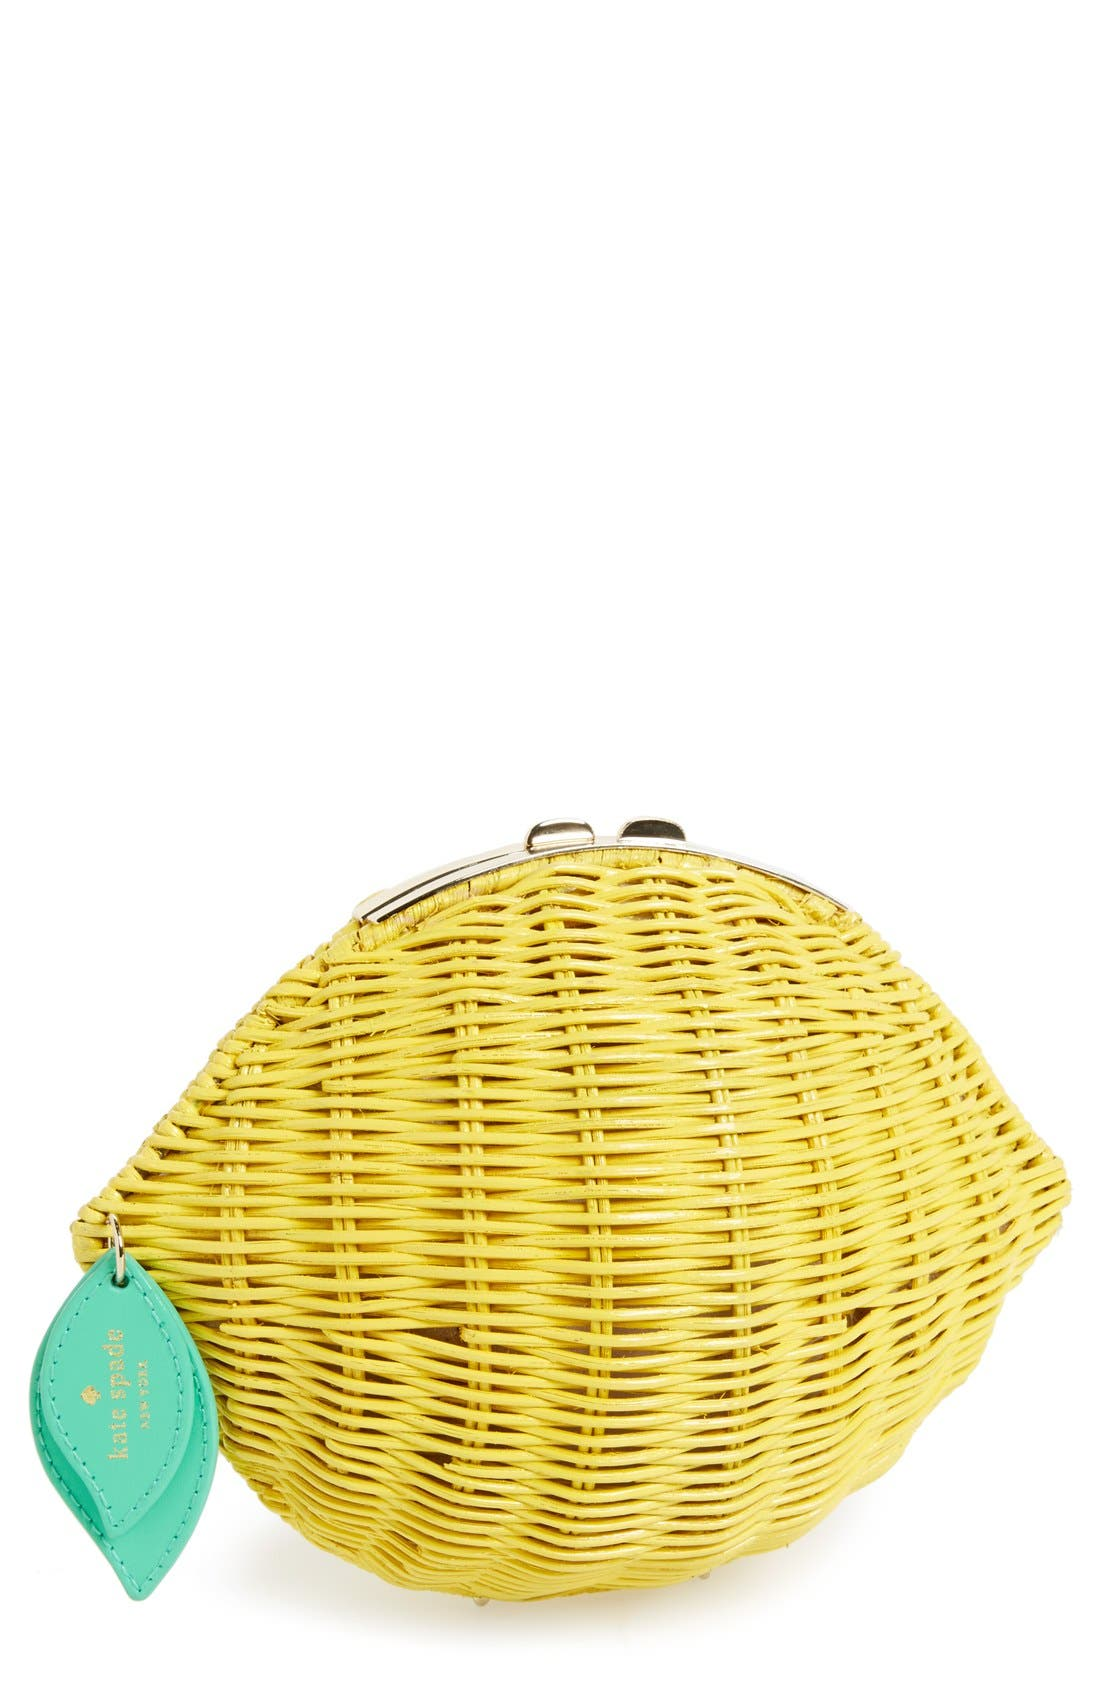 Alternate Image 1 Selected - kate spade new york 'vita riva' wicker lemon crossbody bag